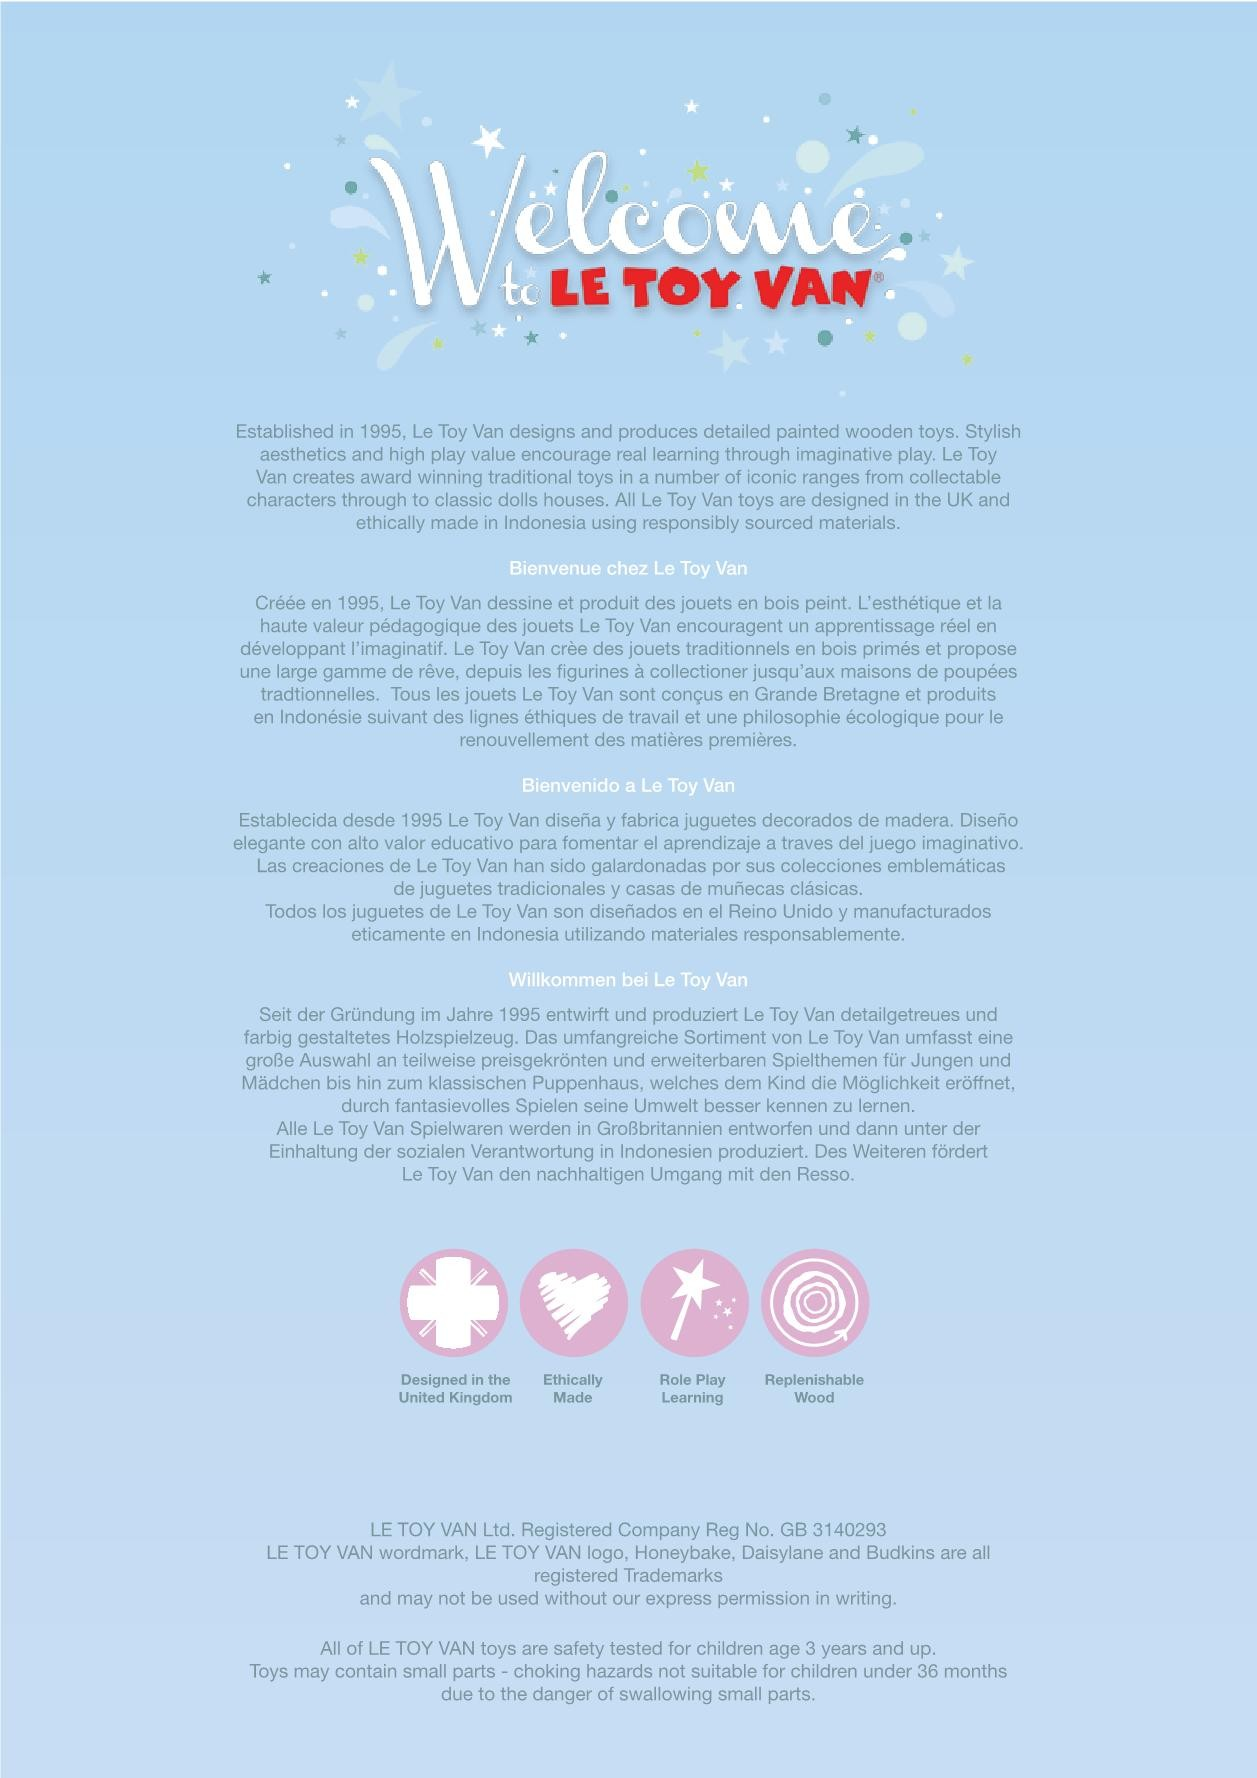 Le Toy Van Wohnzimmer Каталог игрушек Le Toy Van 2014 Pages 1 50 Text Version Fliphtml5